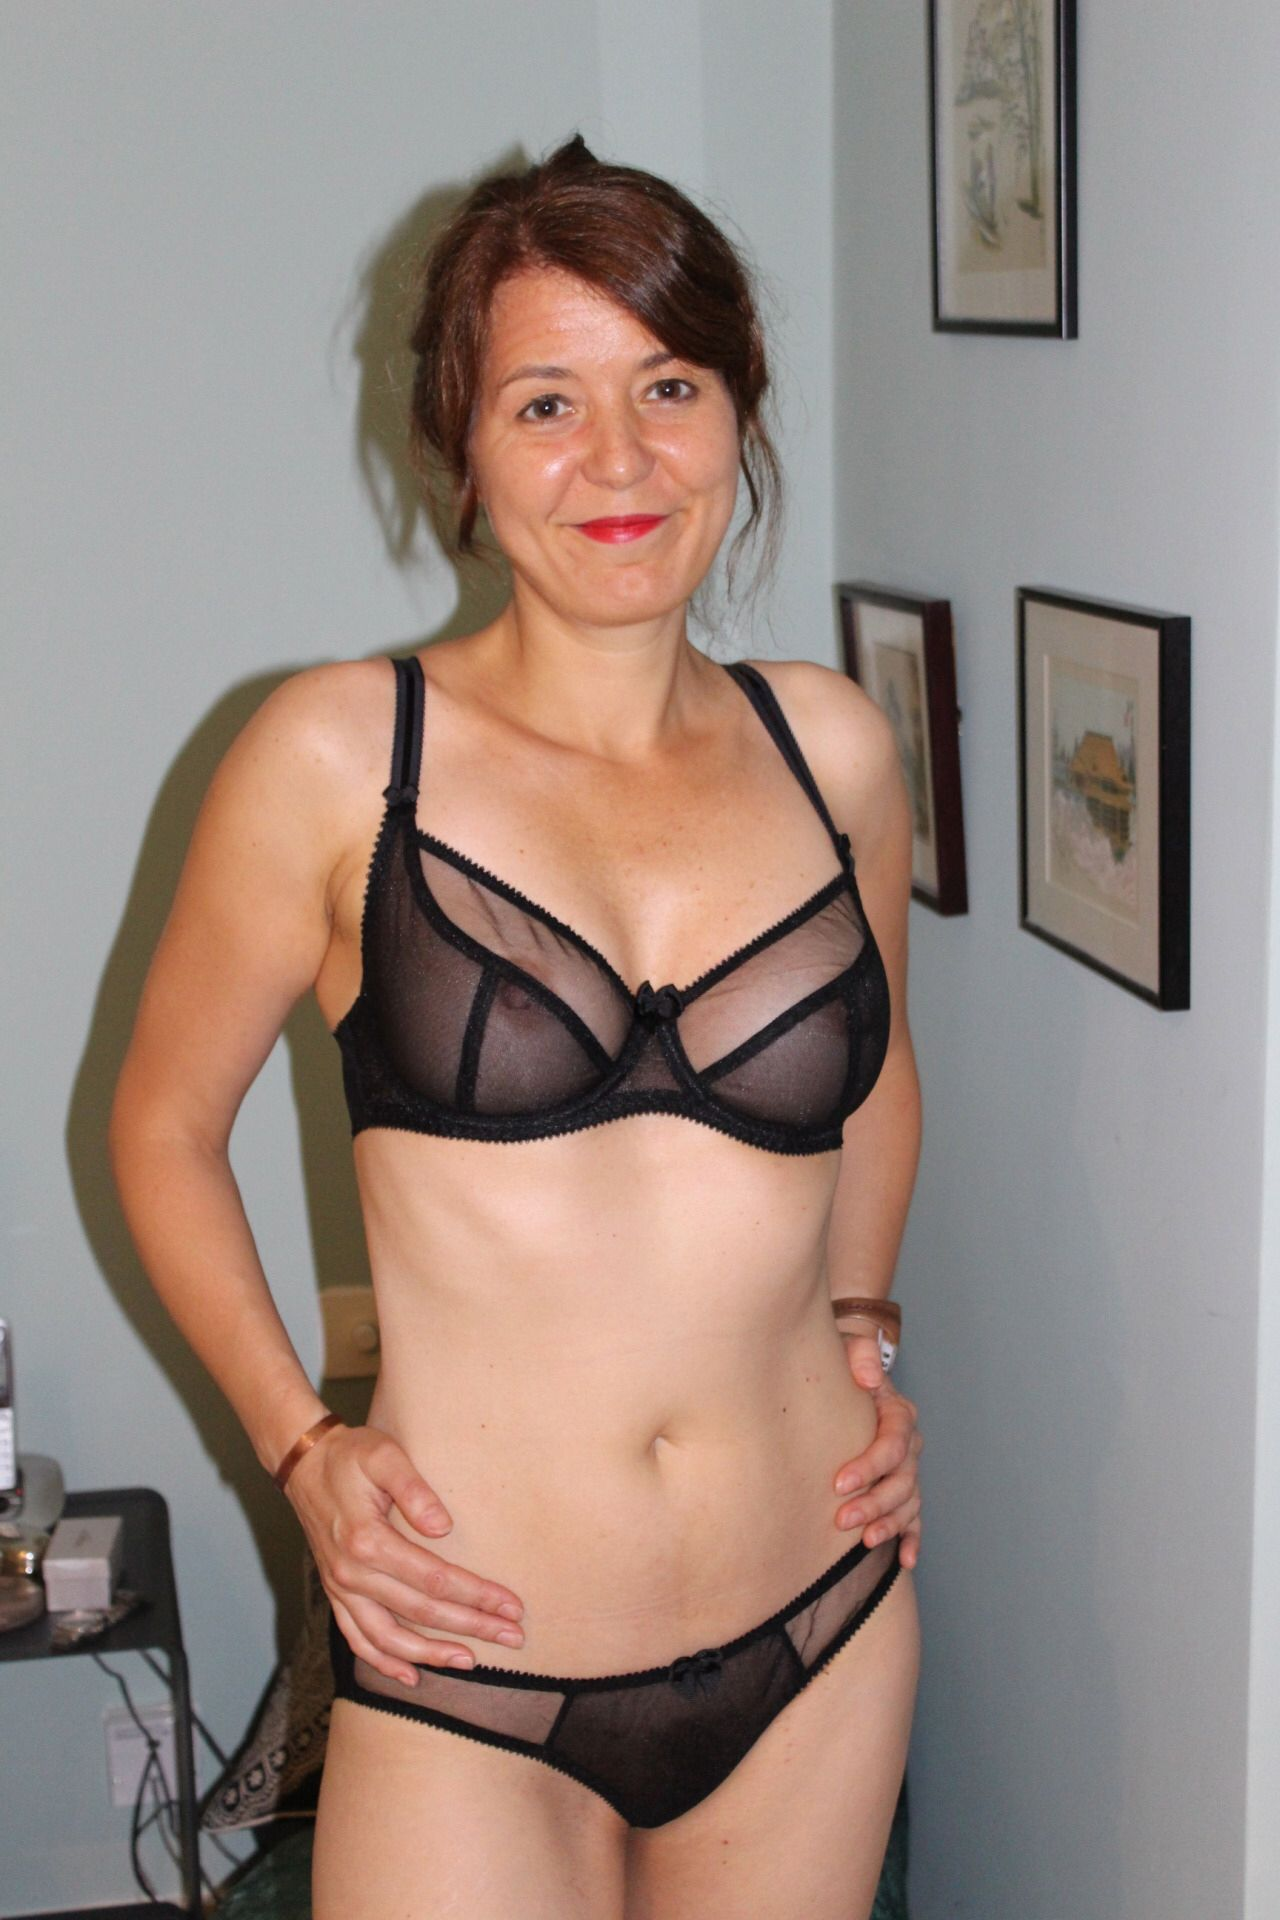 Hot older cougar see thru bra